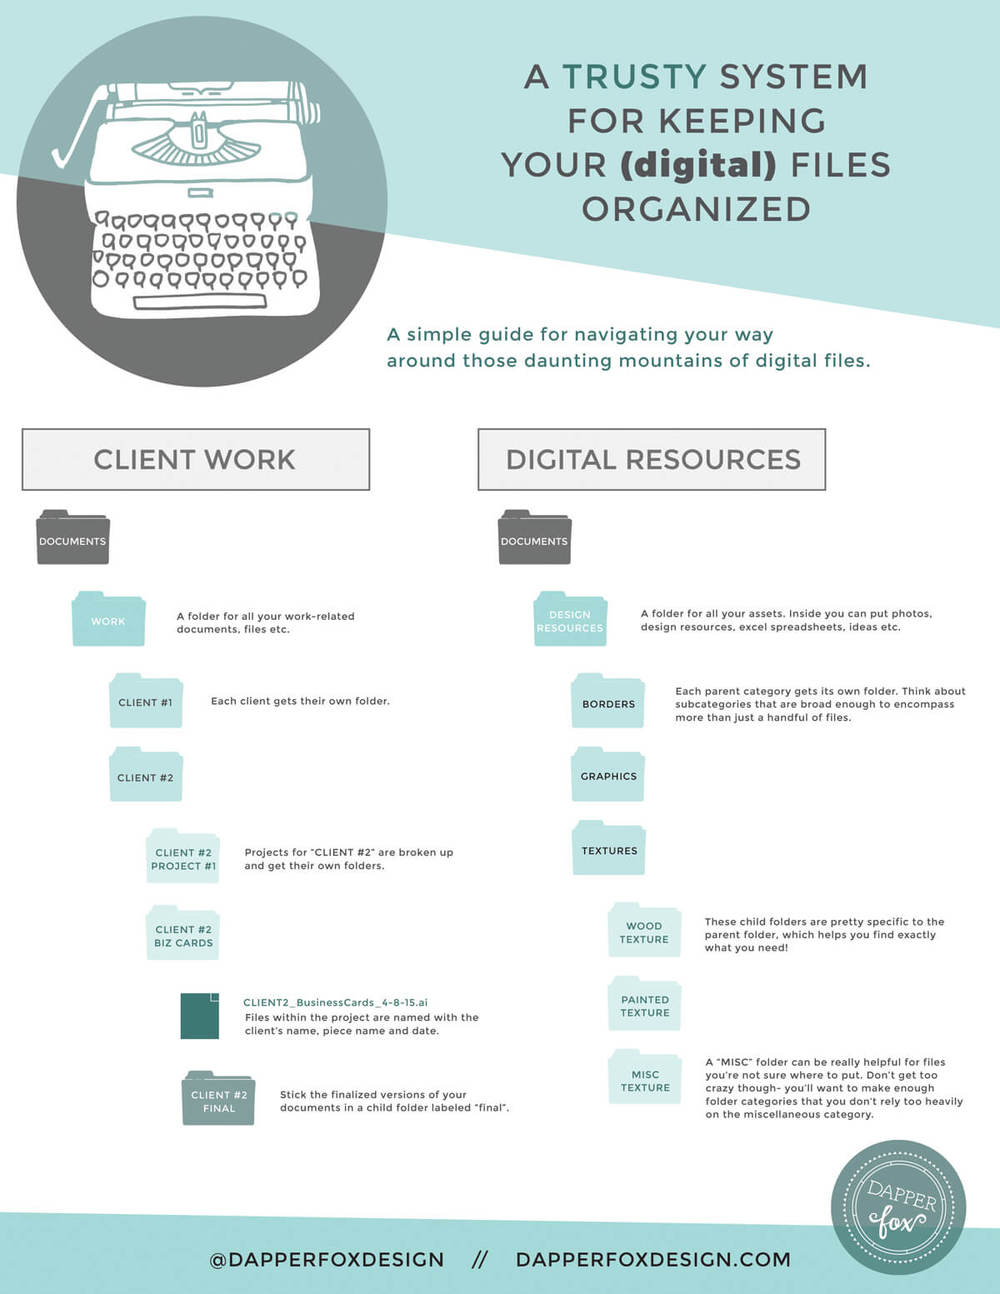 How to organize files for your business by Dapper Fox Design in Salt Lake City Utah//   Website Design - Branding - Logo Design - Entrepreneur Blog and Resource